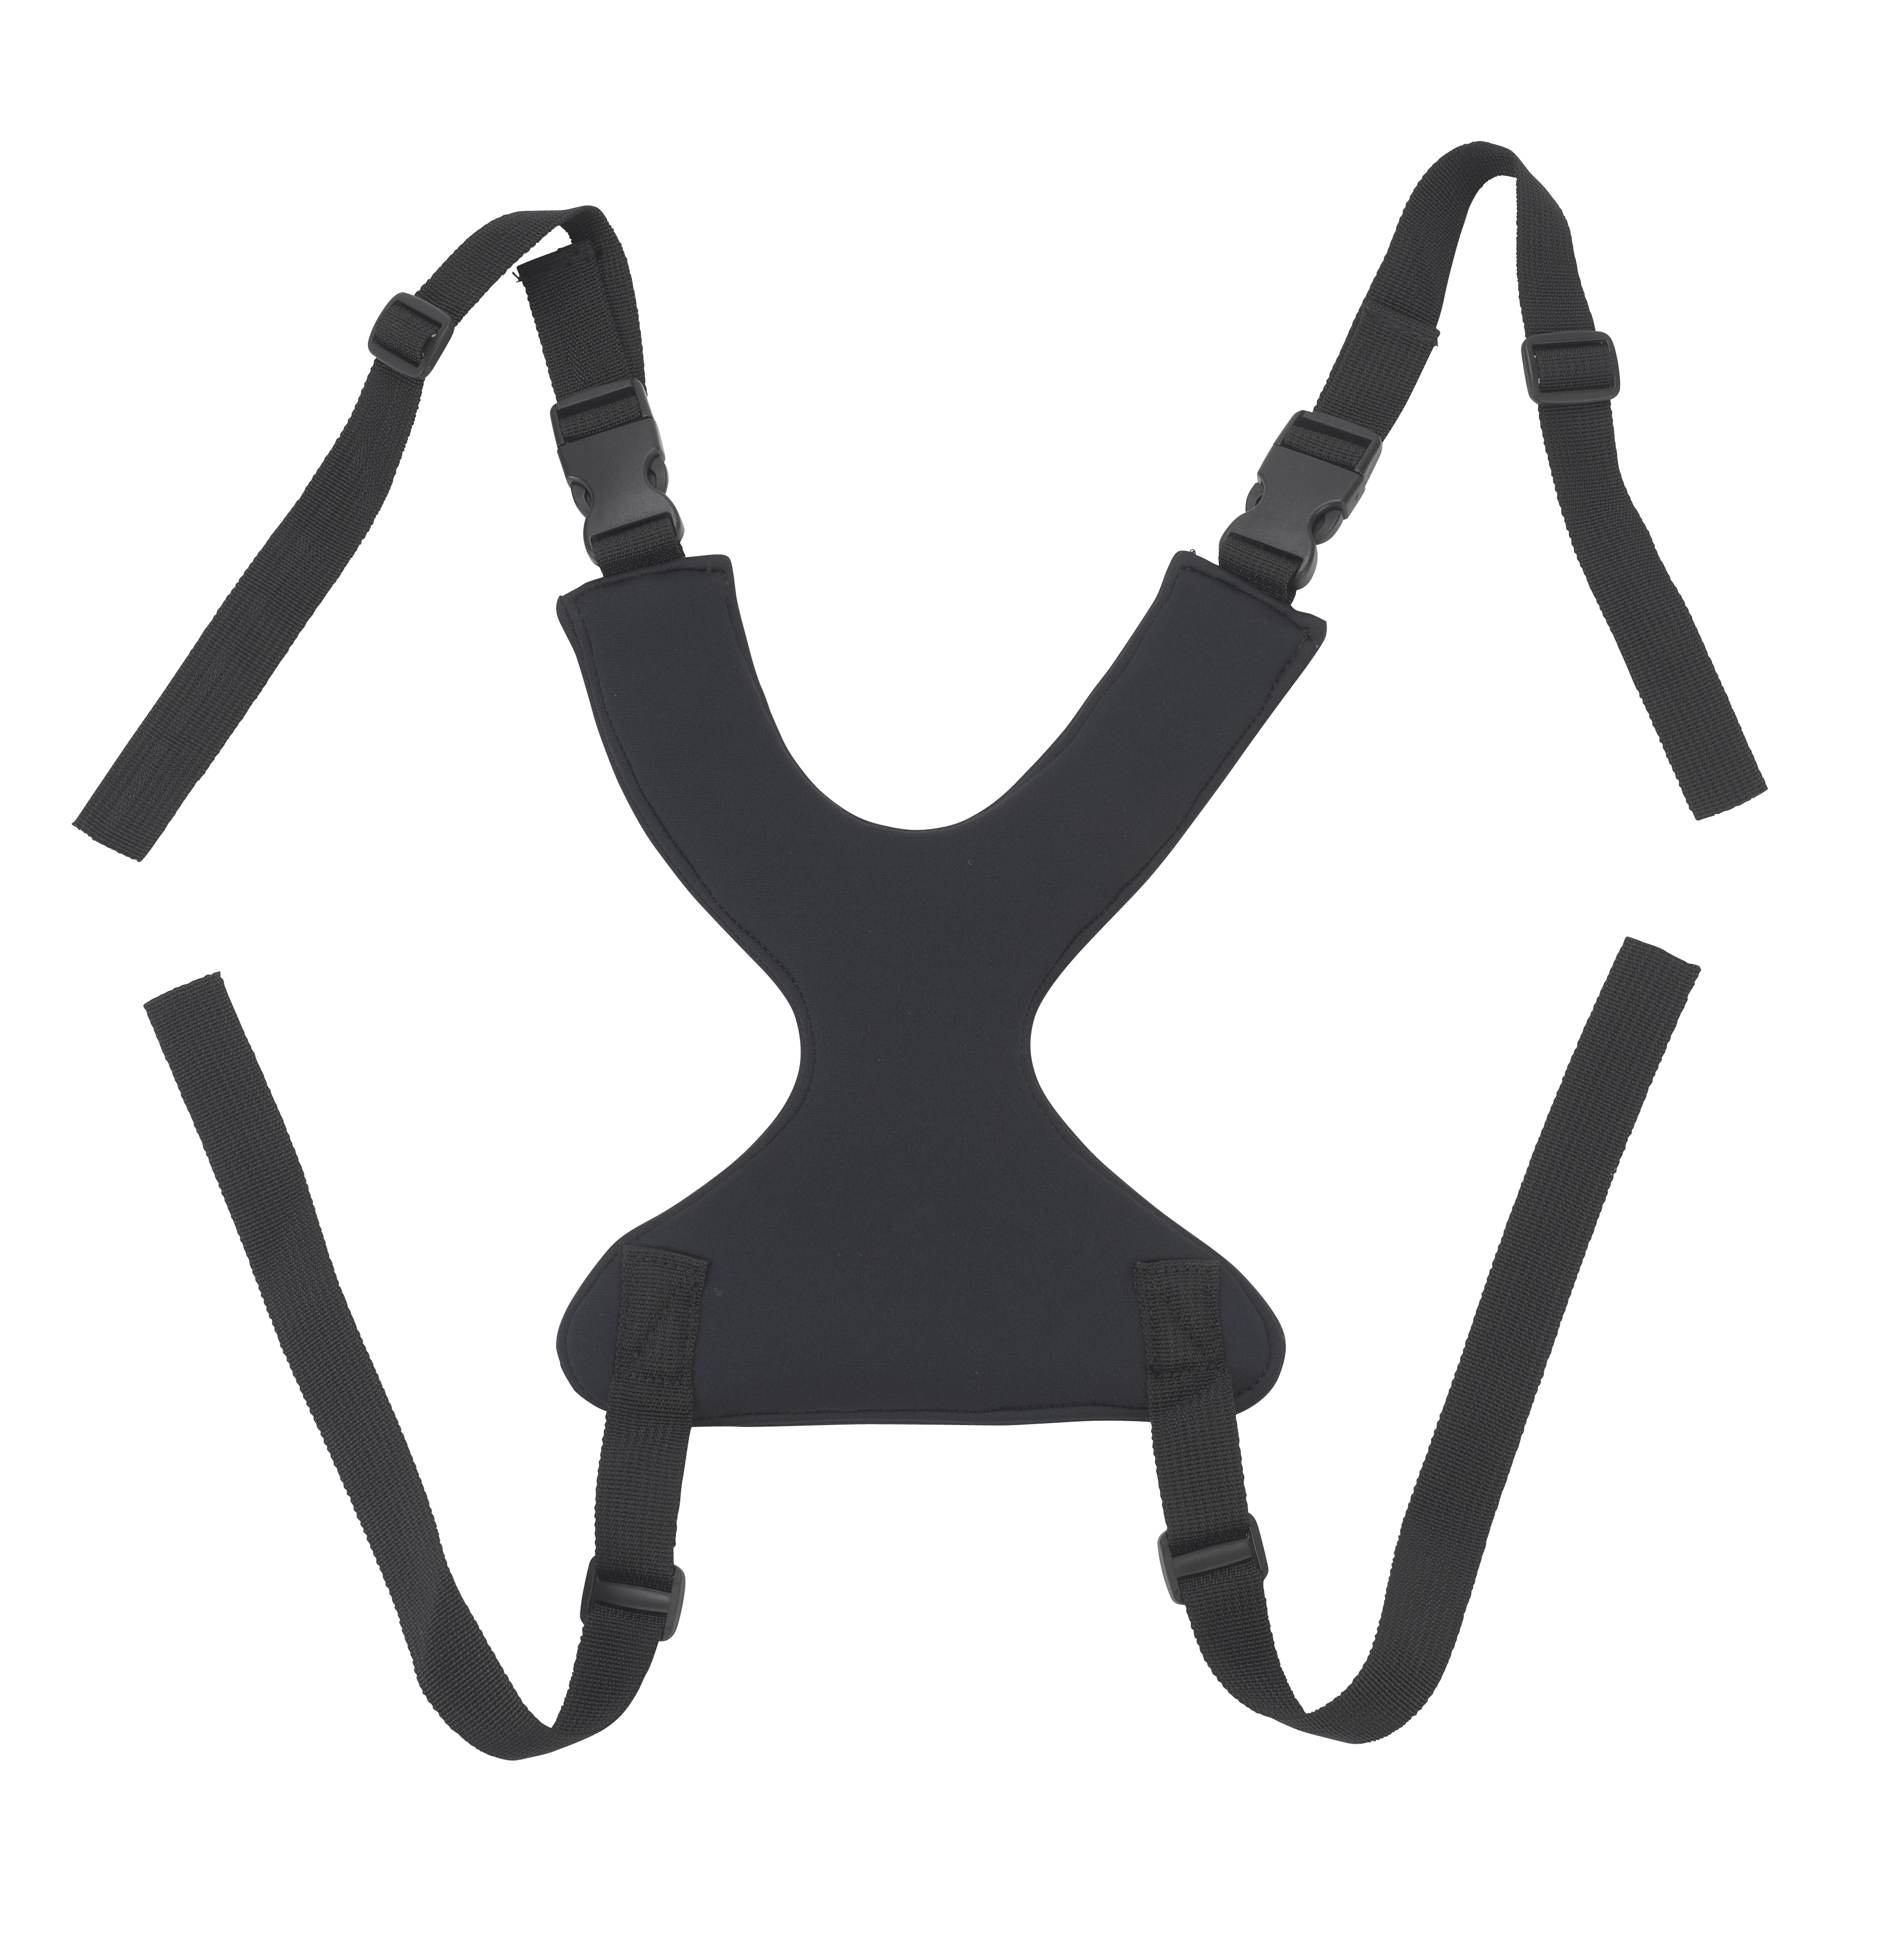 Seat Harness for all Wenzelite Anterior and Posterior Safety Rollers and Nimbo Walkers, Pediatric